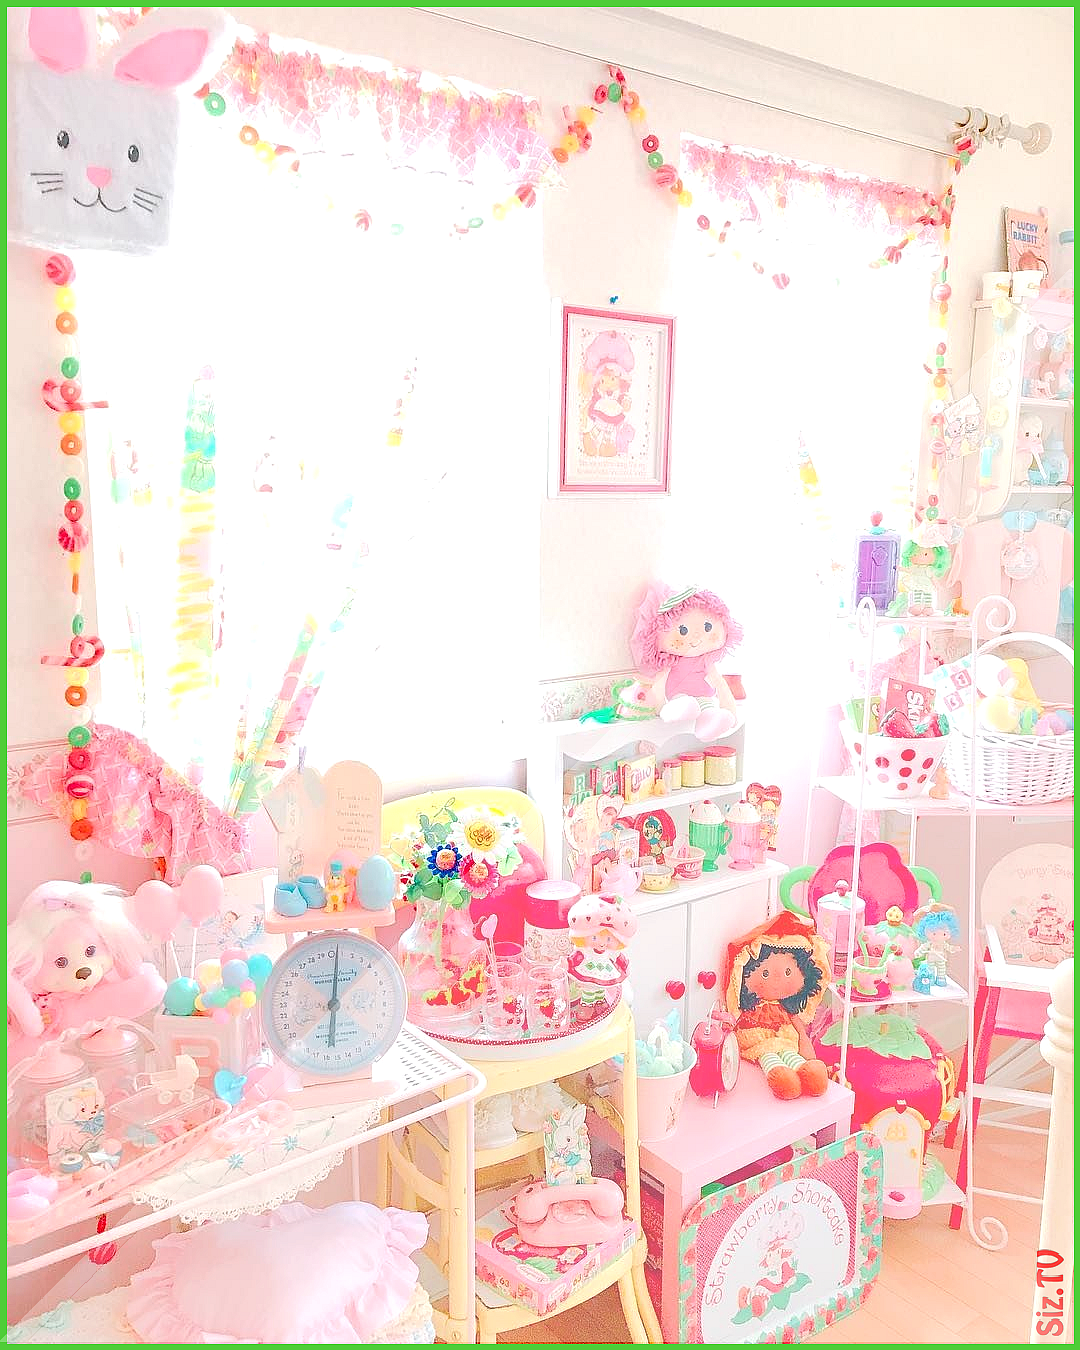 Kawaii Toy Room Pastel From The 80s and 90s www CuteVintageToys Hundreds Of Kawaii Vintage Toys Fro